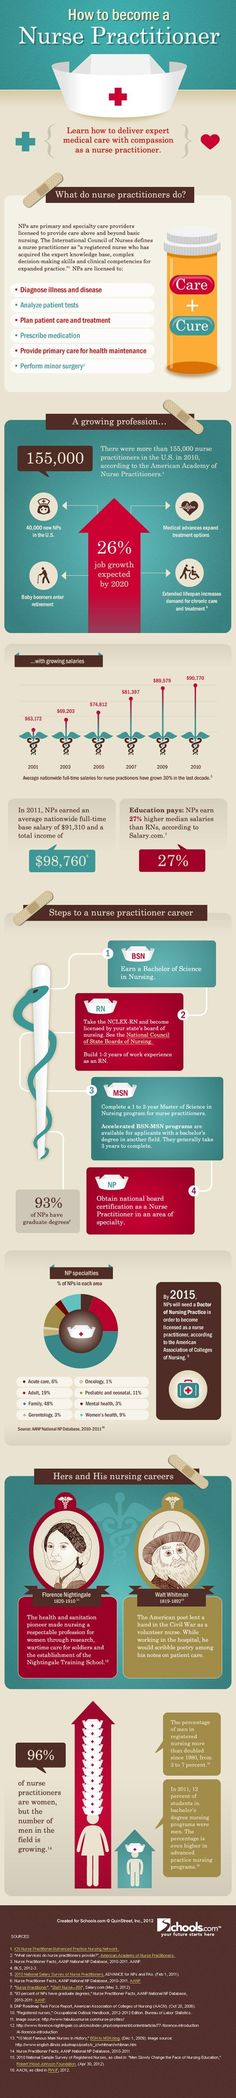 How To Become A Nurse Practitioner [Infographic]